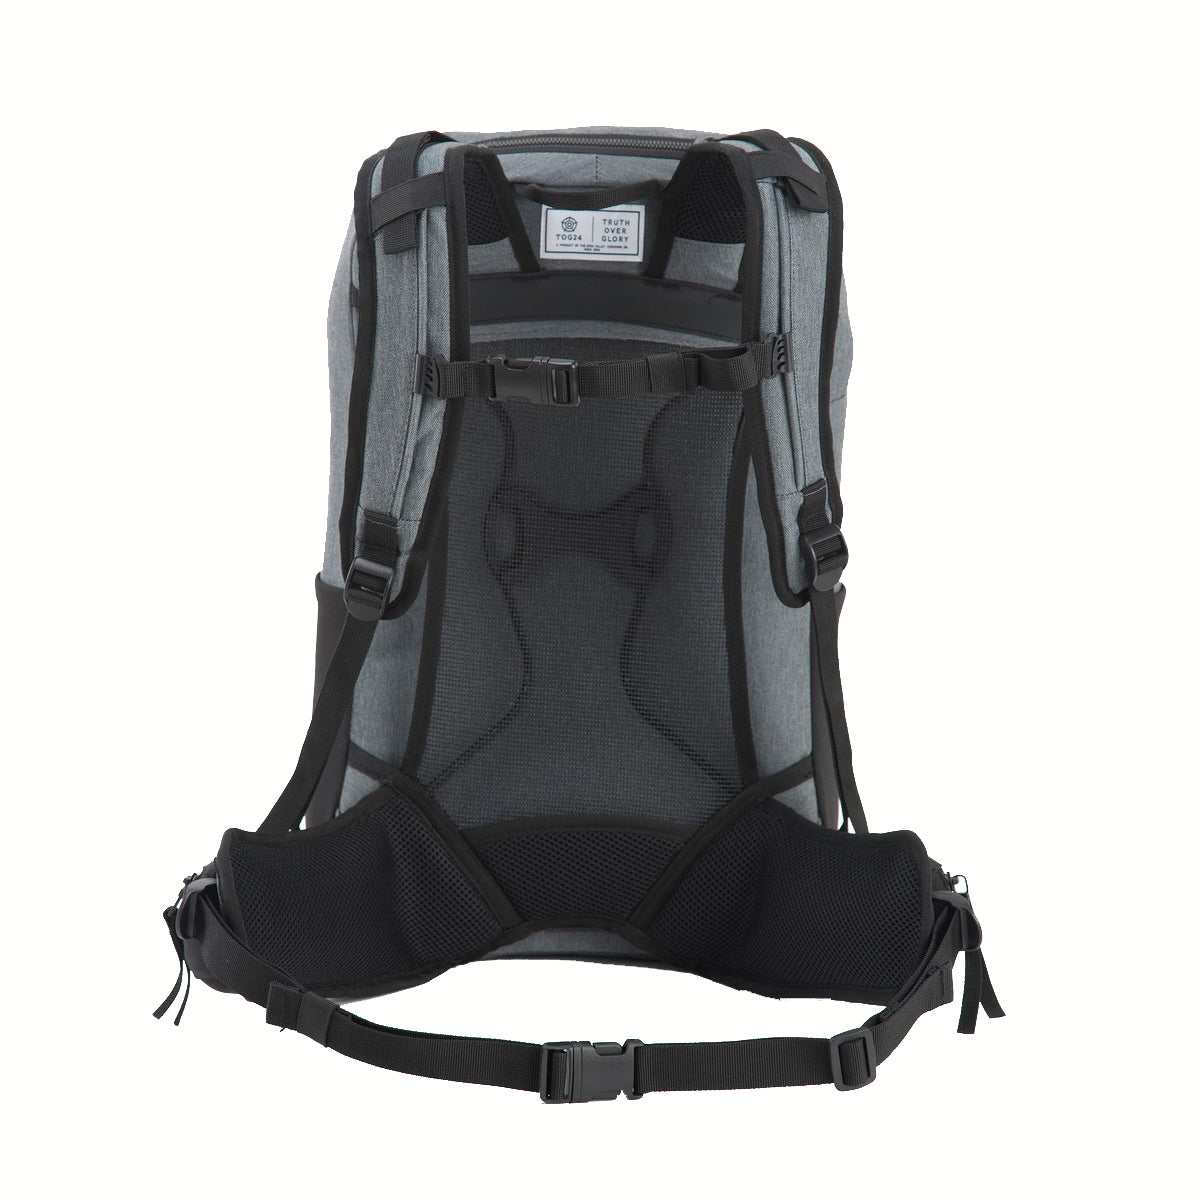 Flint 30L Technical Backpack - Dark Grey Marl image 4